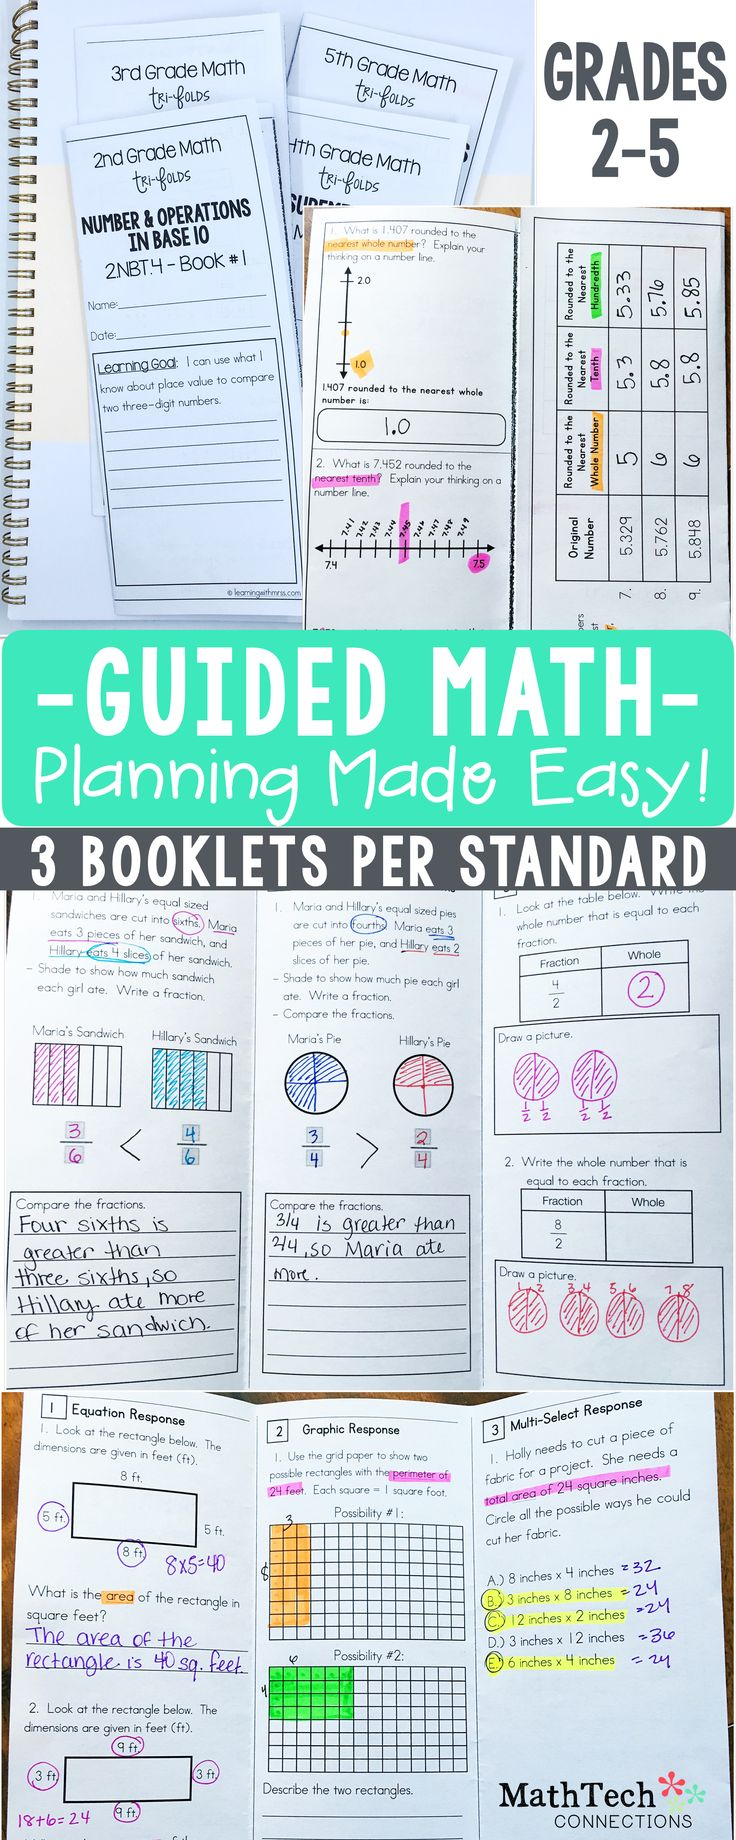 37 best images about School-math centers on Pinterest | Teaching ...